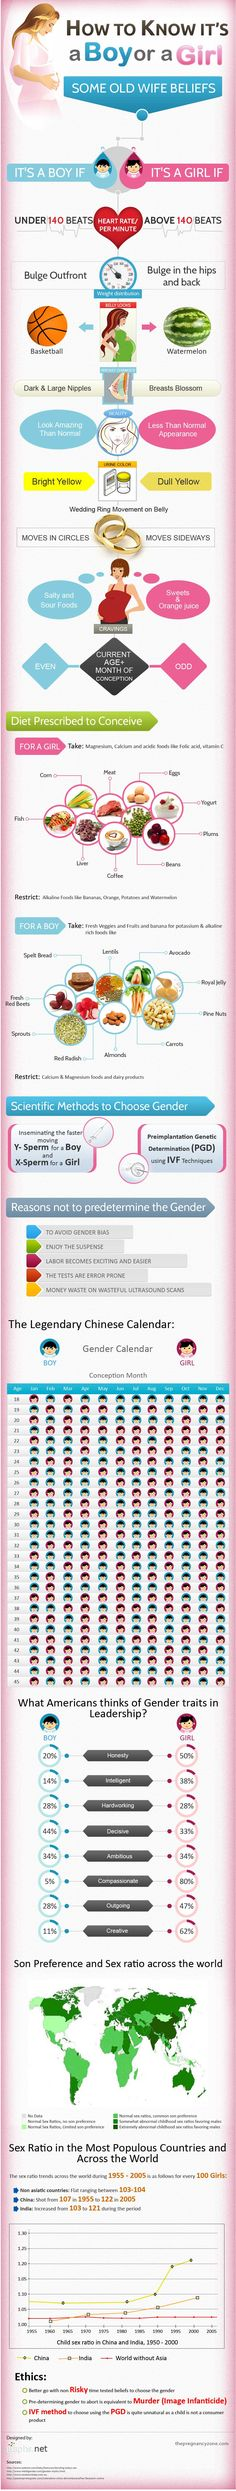 How to Know it's a Boy or a Girl Infographic - This is so fun even if it may not be true.